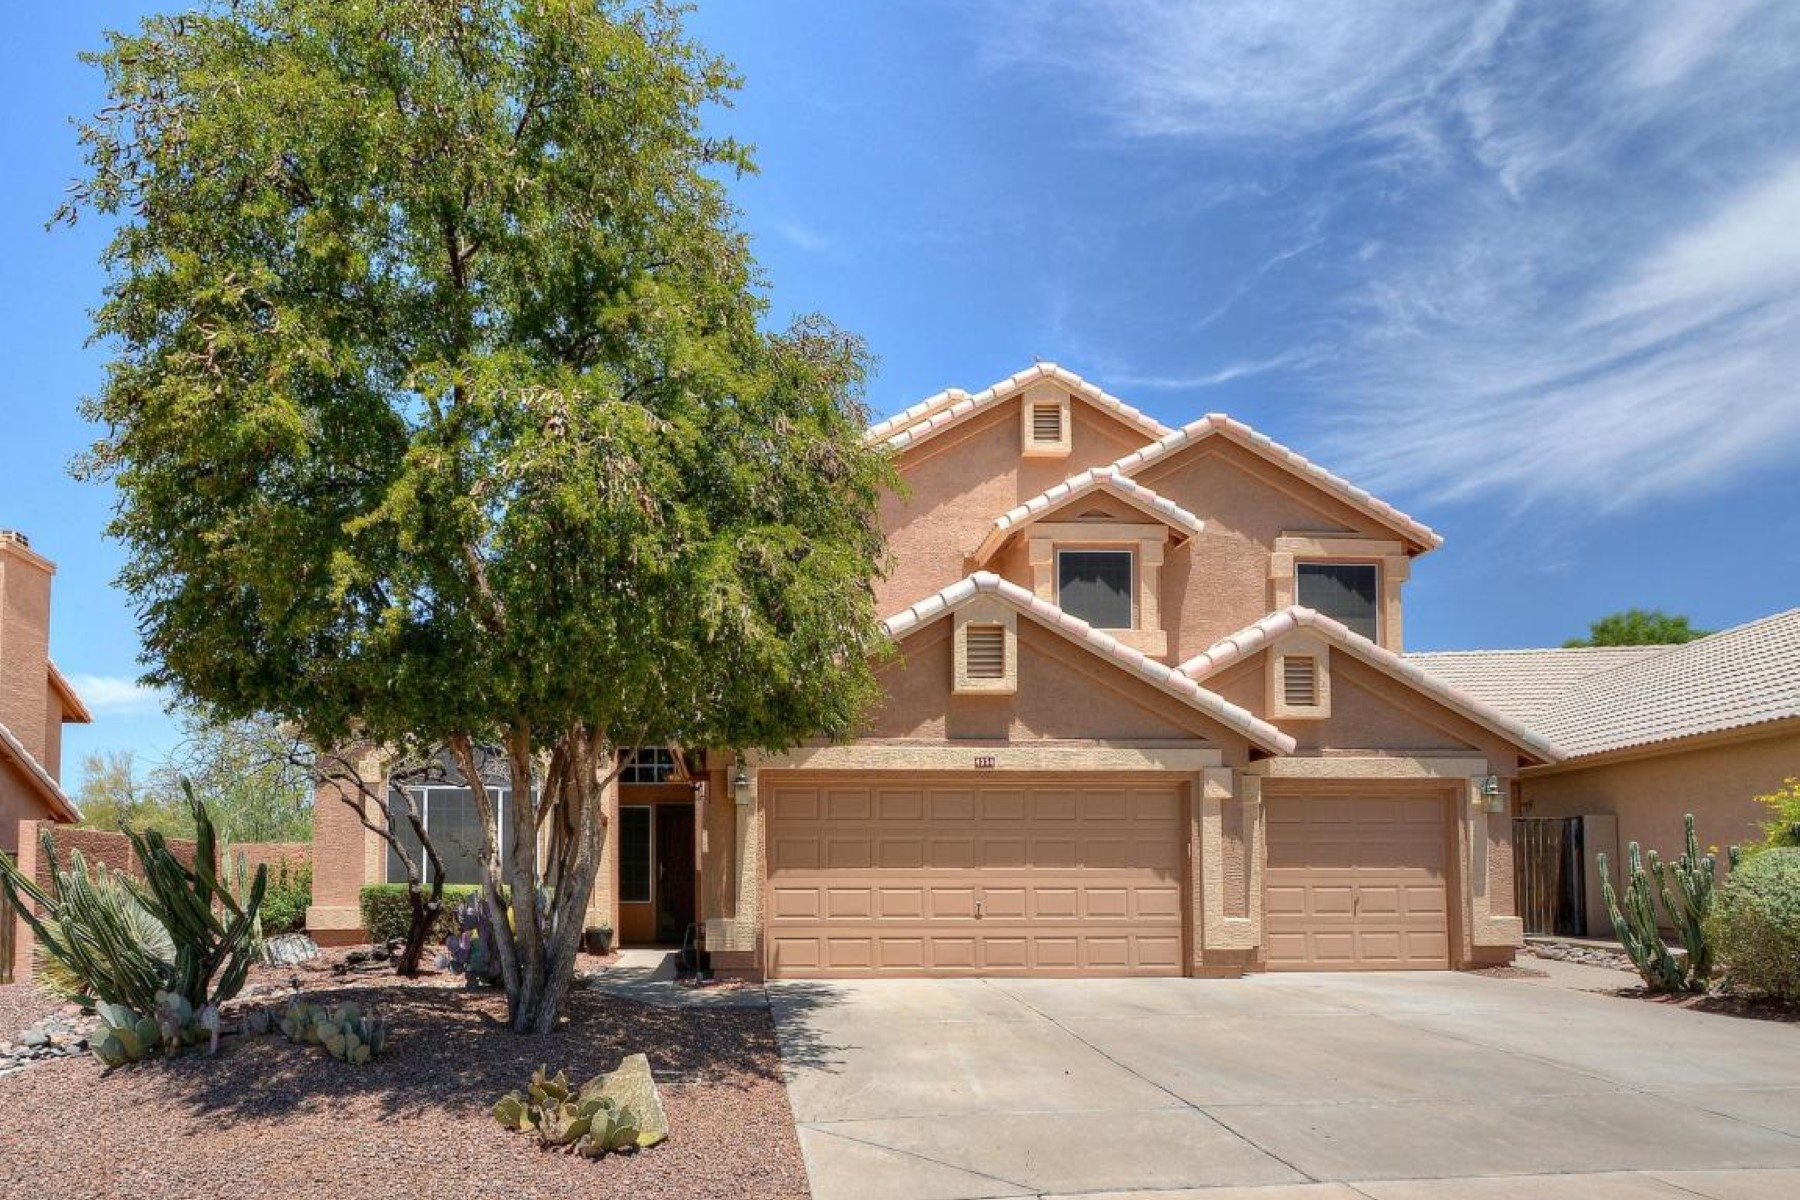 Single Family Home for Sale at Great two story home in Tatum Ranch 4356 E Rancho Tierra Dr Cave Creek, Arizona, 85331 United States